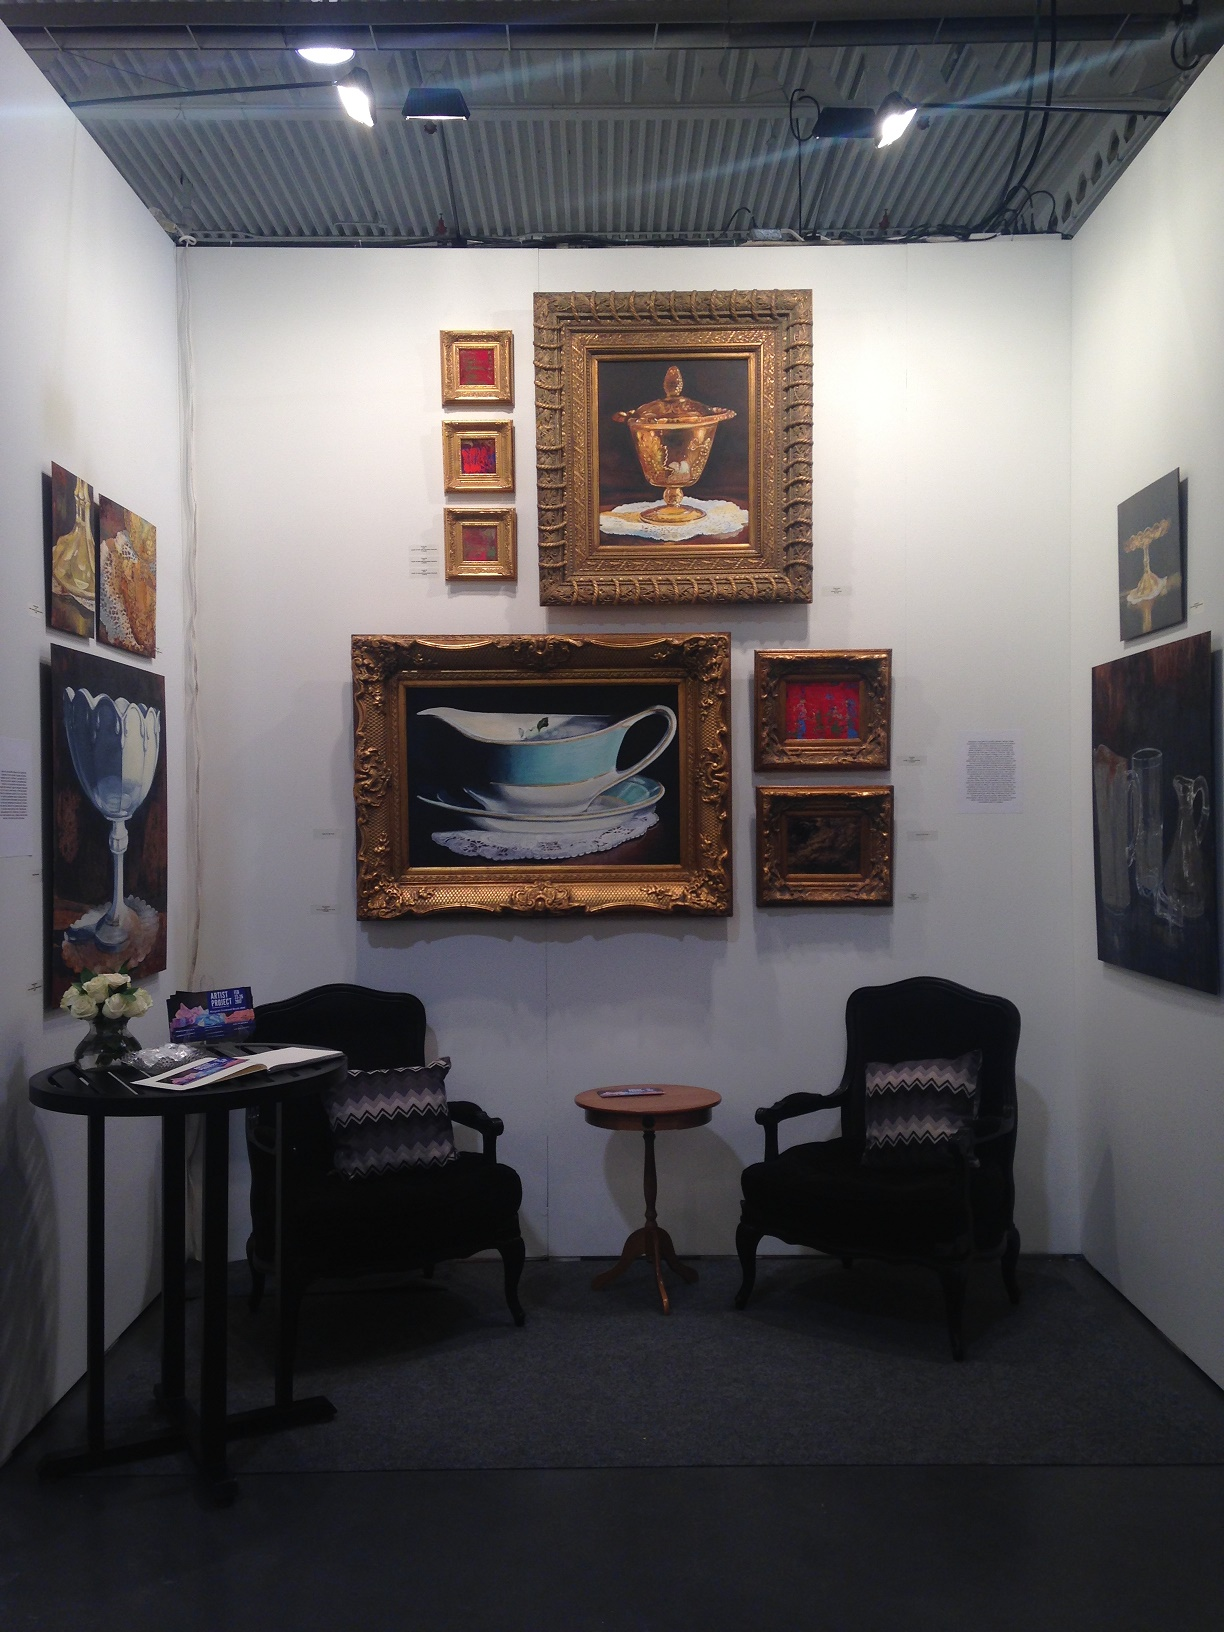 Booth 540 c